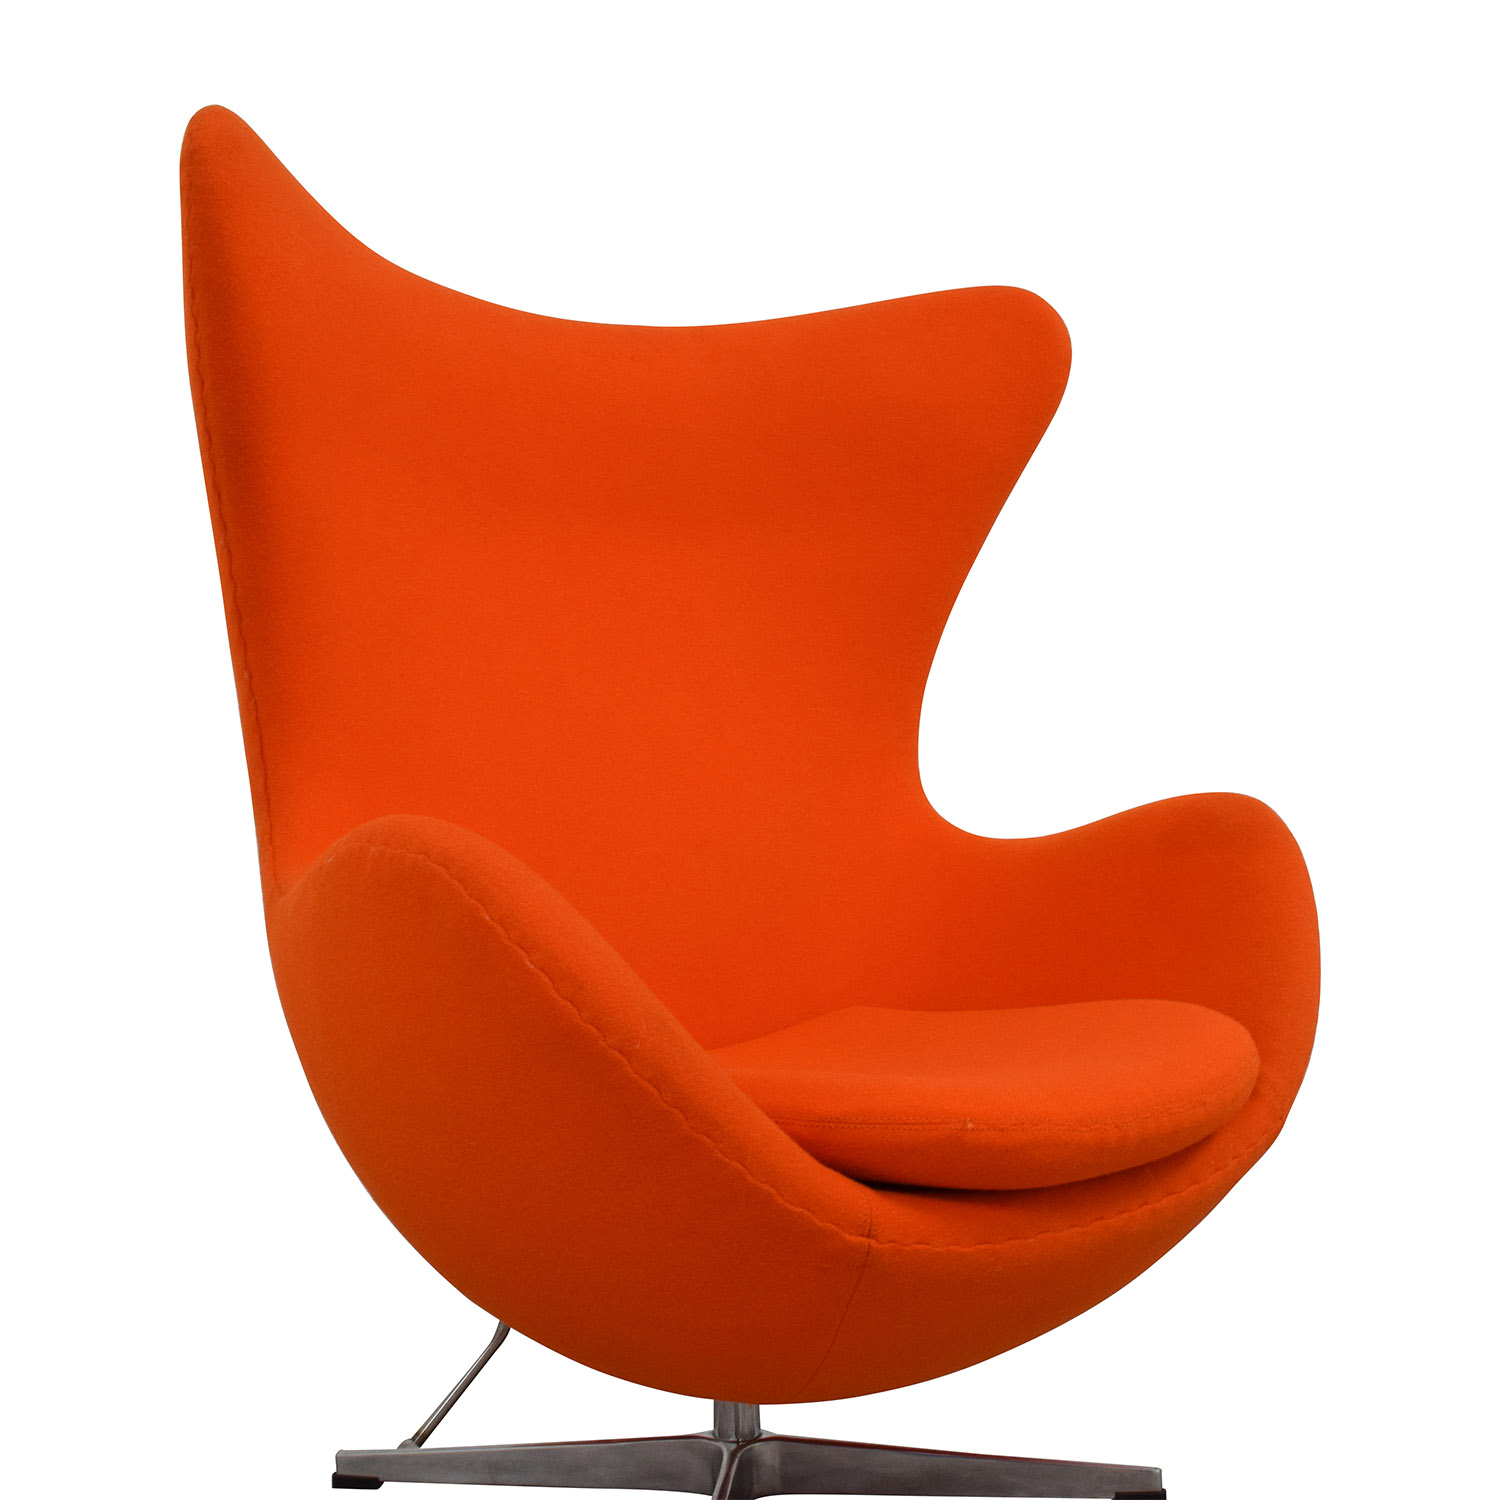 chairs jacobsen orange chair egg nj buy inmod off